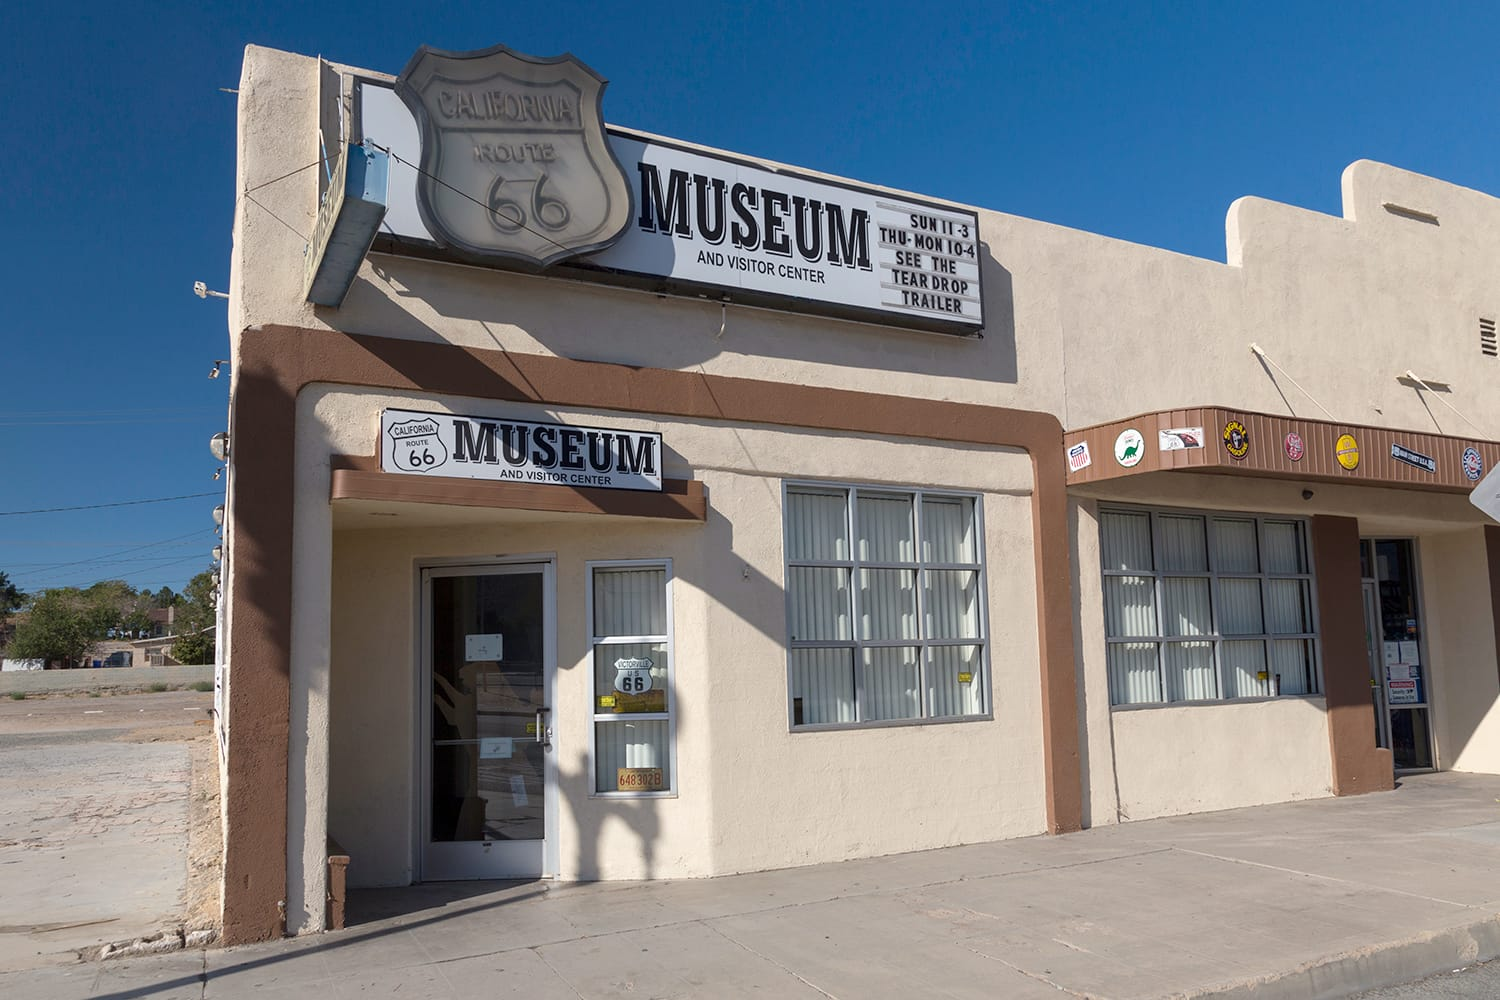 Route 66 Museum in Victorville, California, USA